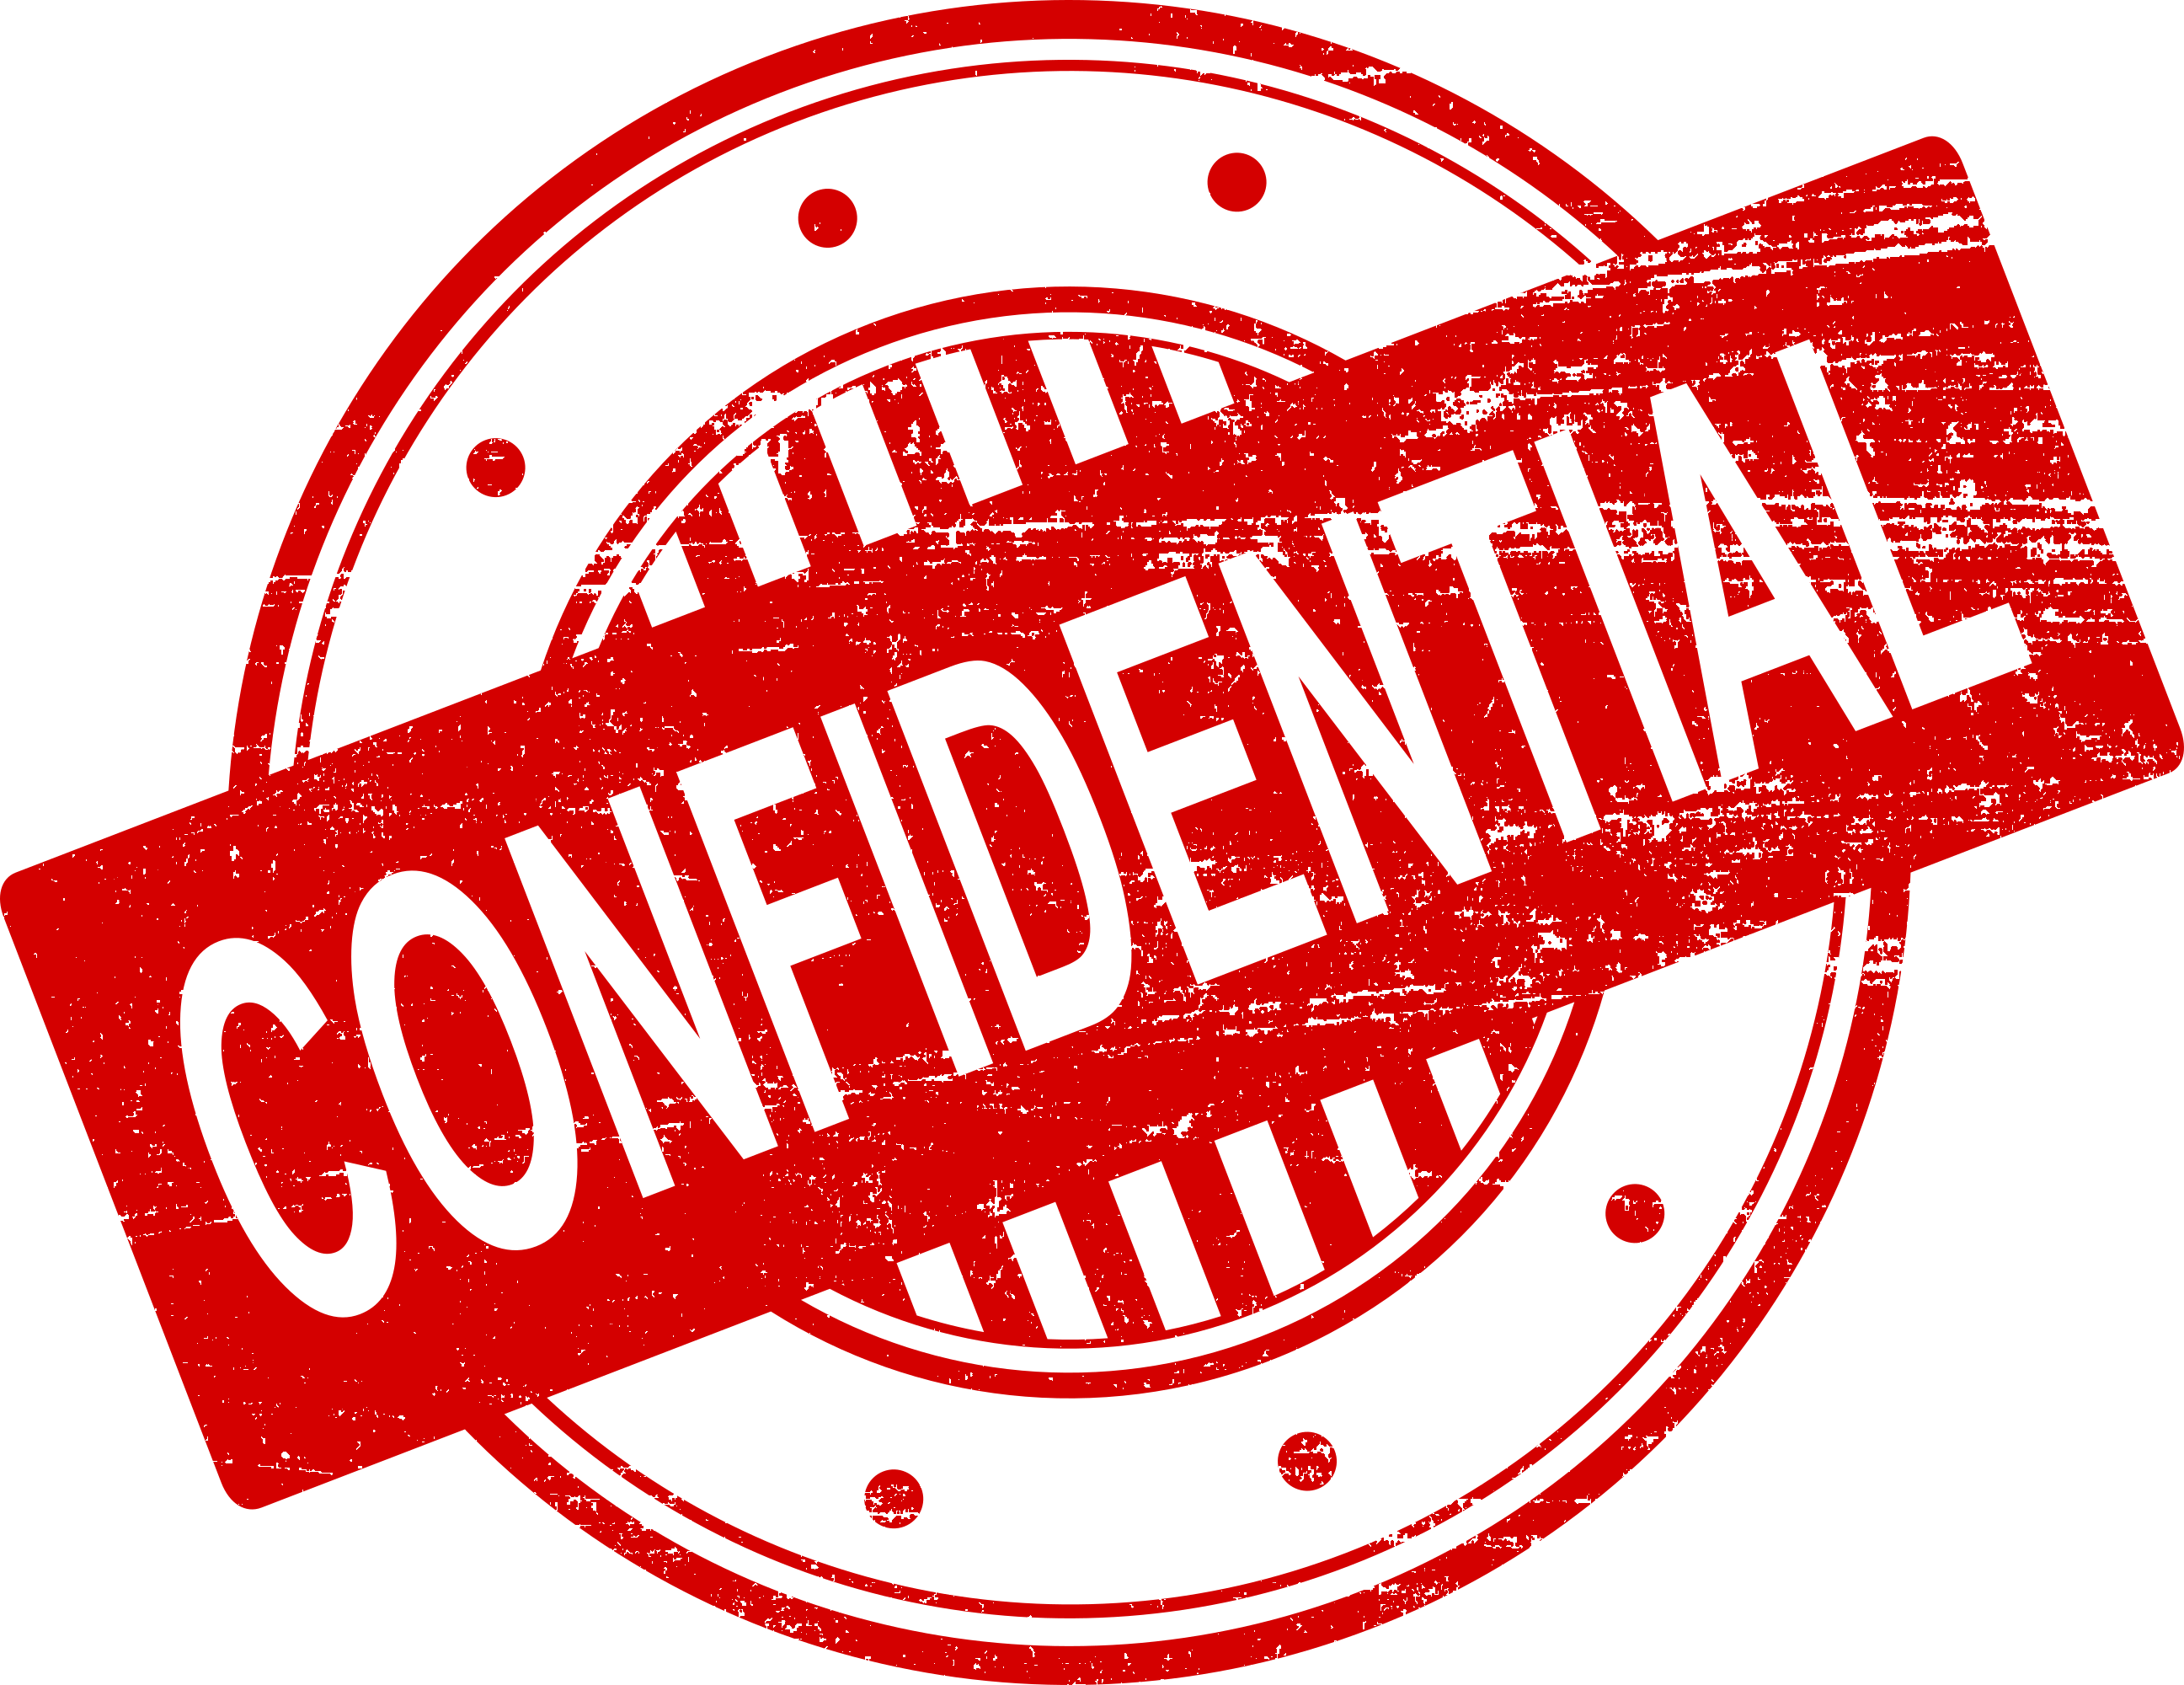 Confidential Png - 4 Confidential Stamp (PNG Transparent)   OnlyGFX.com